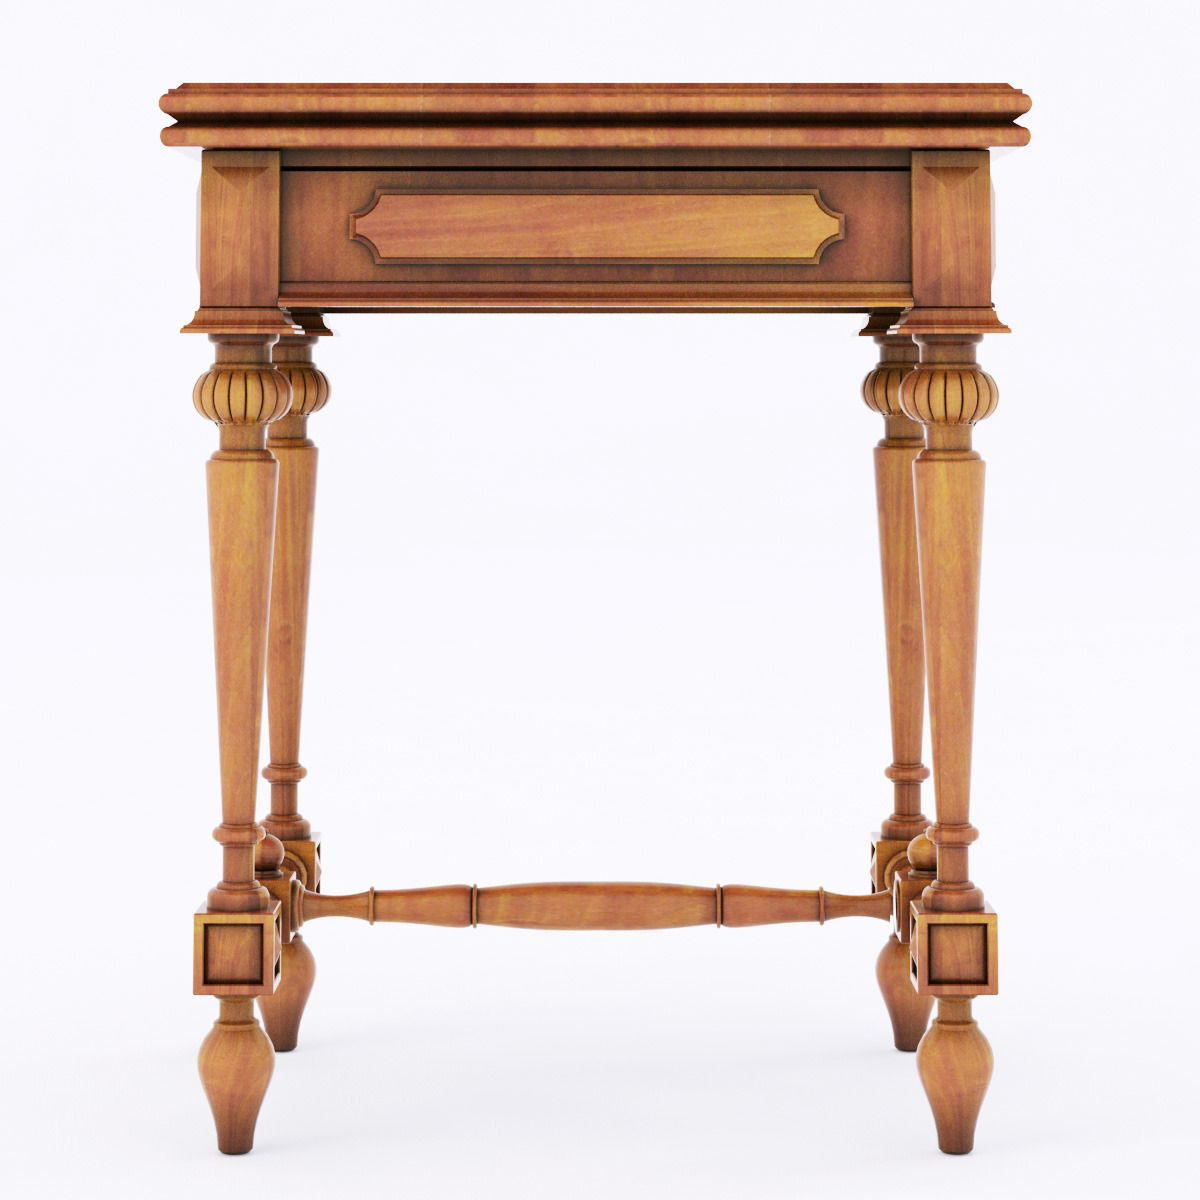 Small wood table : antique wood table 3d model max obj 3ds fbx from yucatanhomeinspect.com size 1200 x 1200 jpeg 113kB